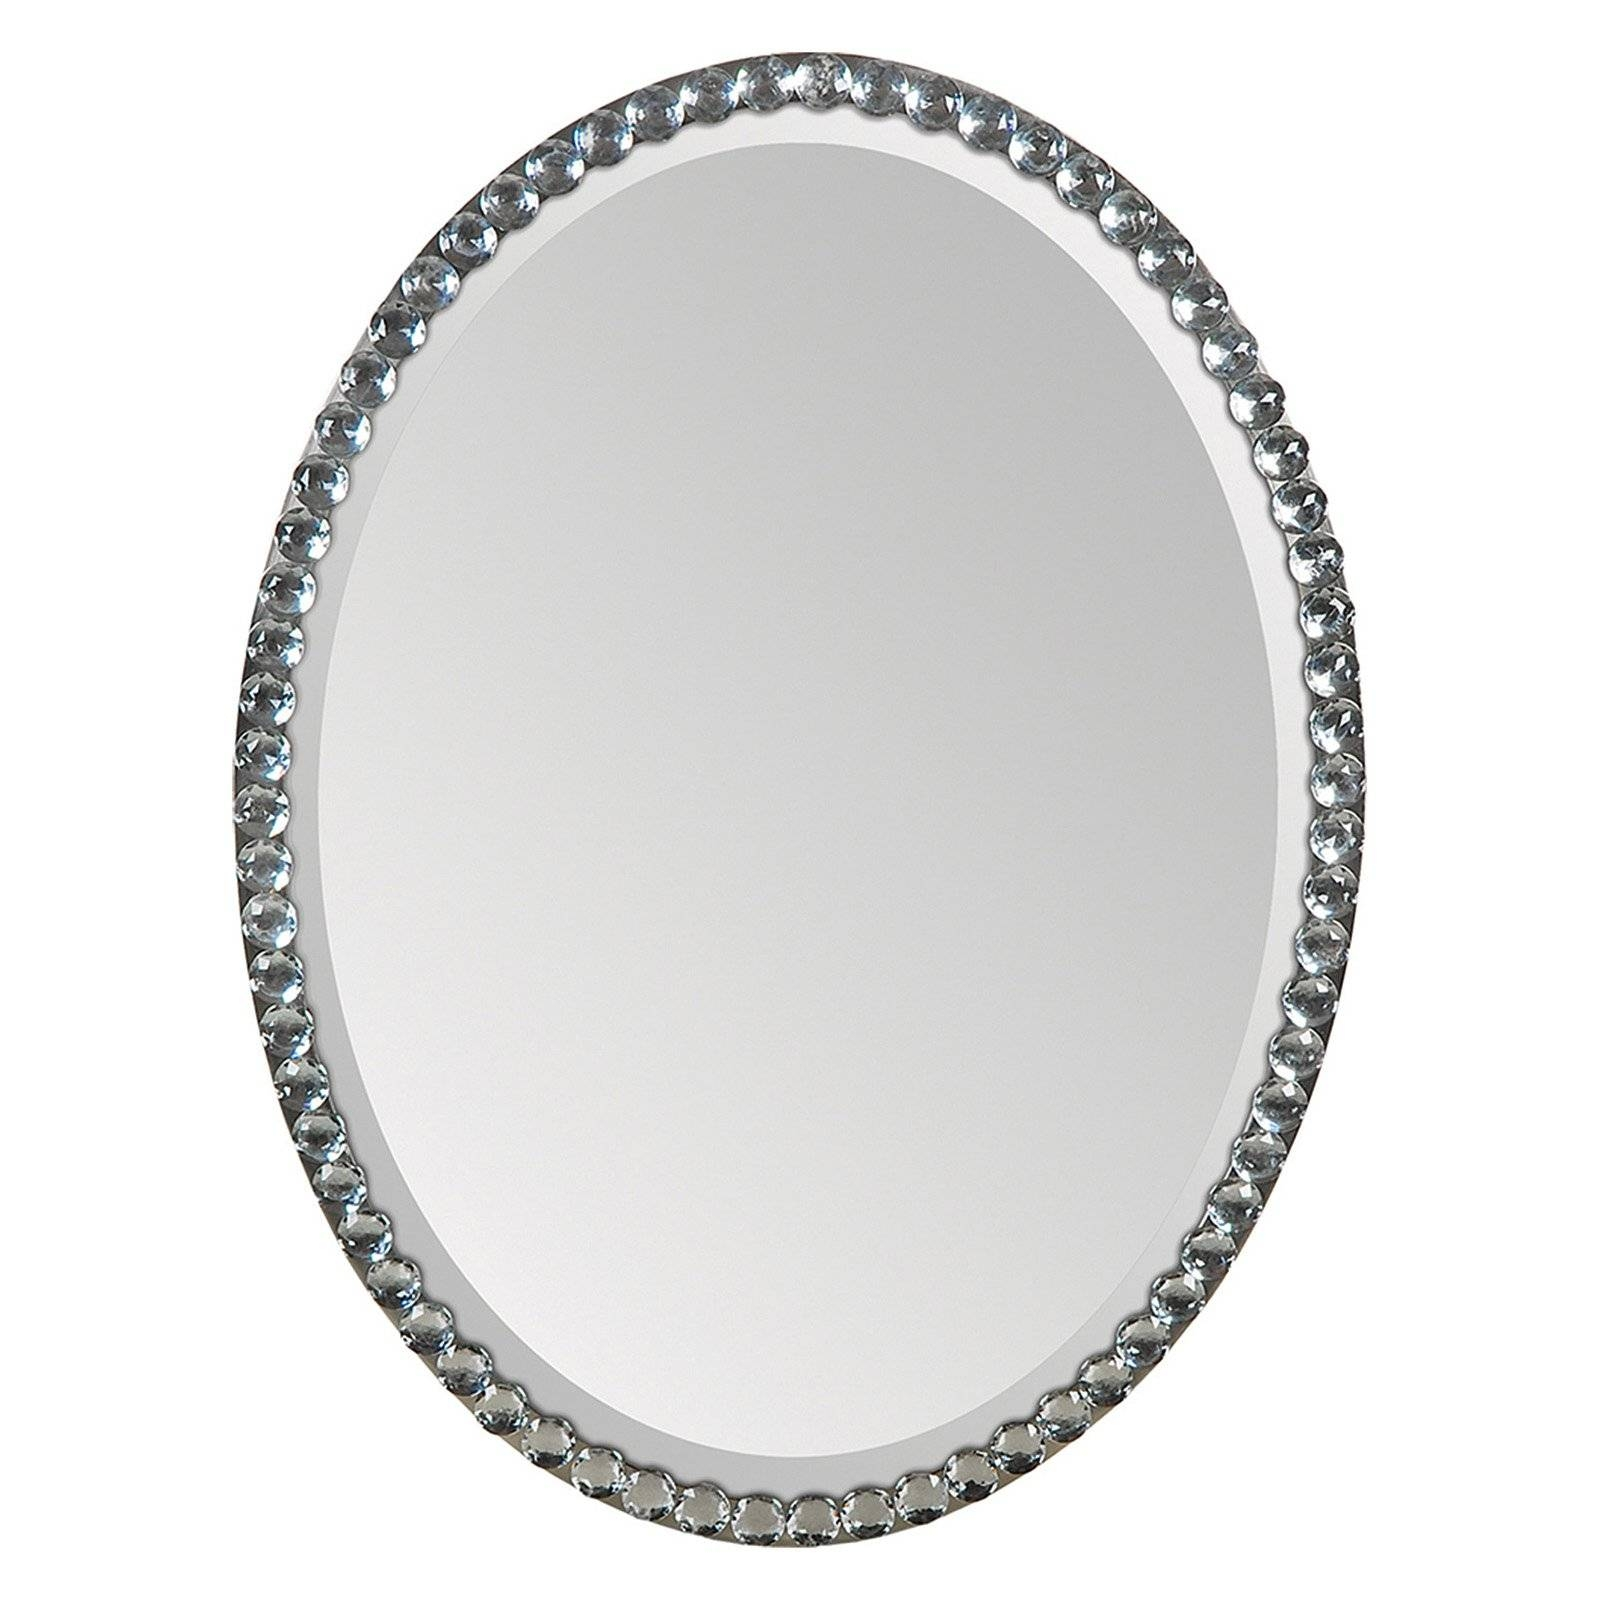 Ren-Wil Oval Crystal Framed Wall Mirror - 24W X 32H In. - Walmart for Oval Wall Mirrors (Image 20 of 25)